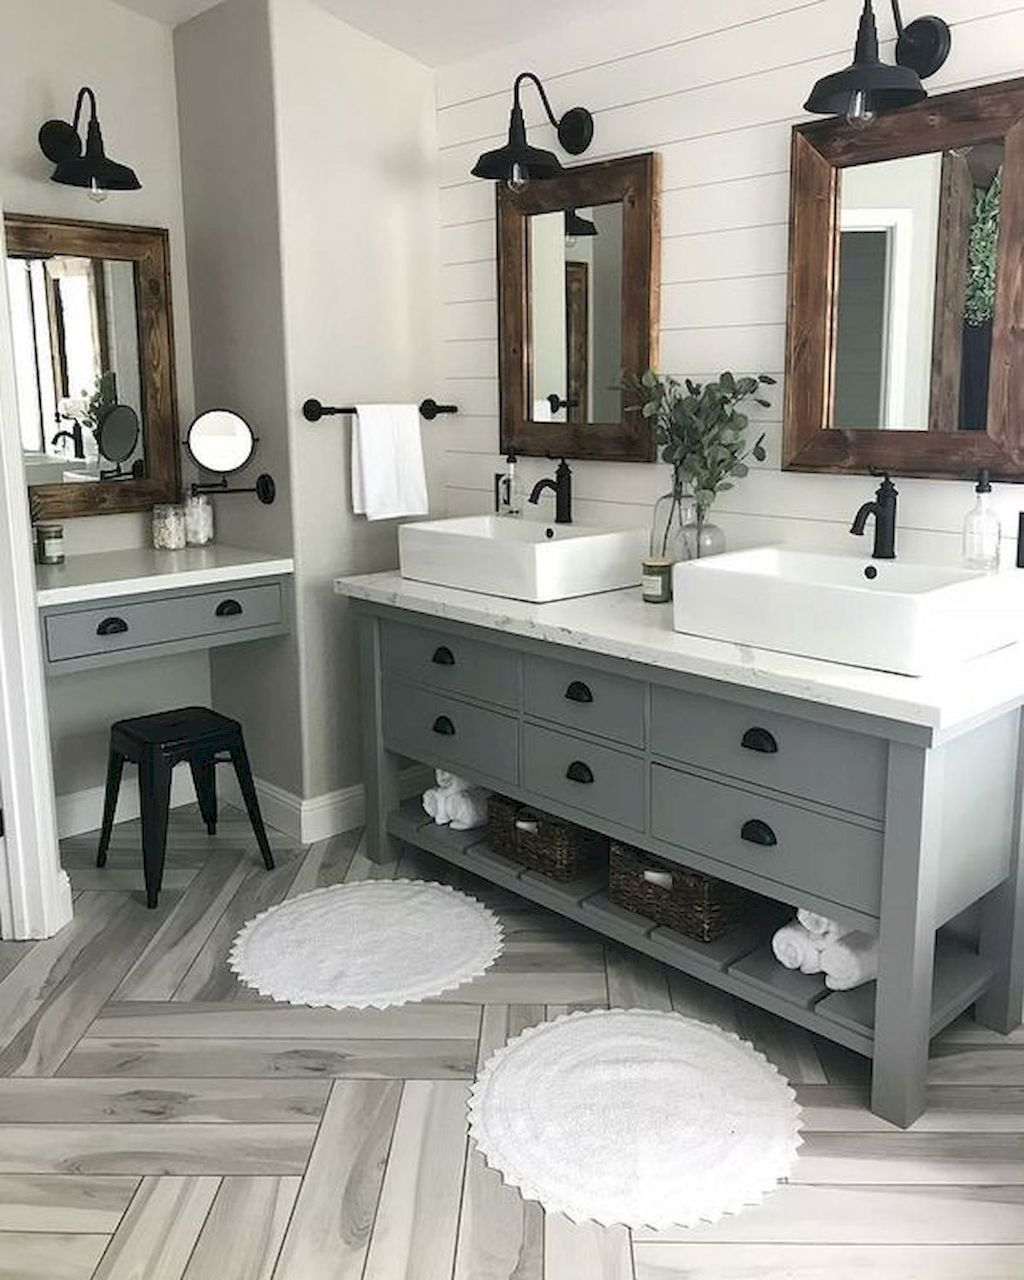 90 Beautiful Farmhouse Bathroom Remodel Ideas | Home Decor: Bathroom